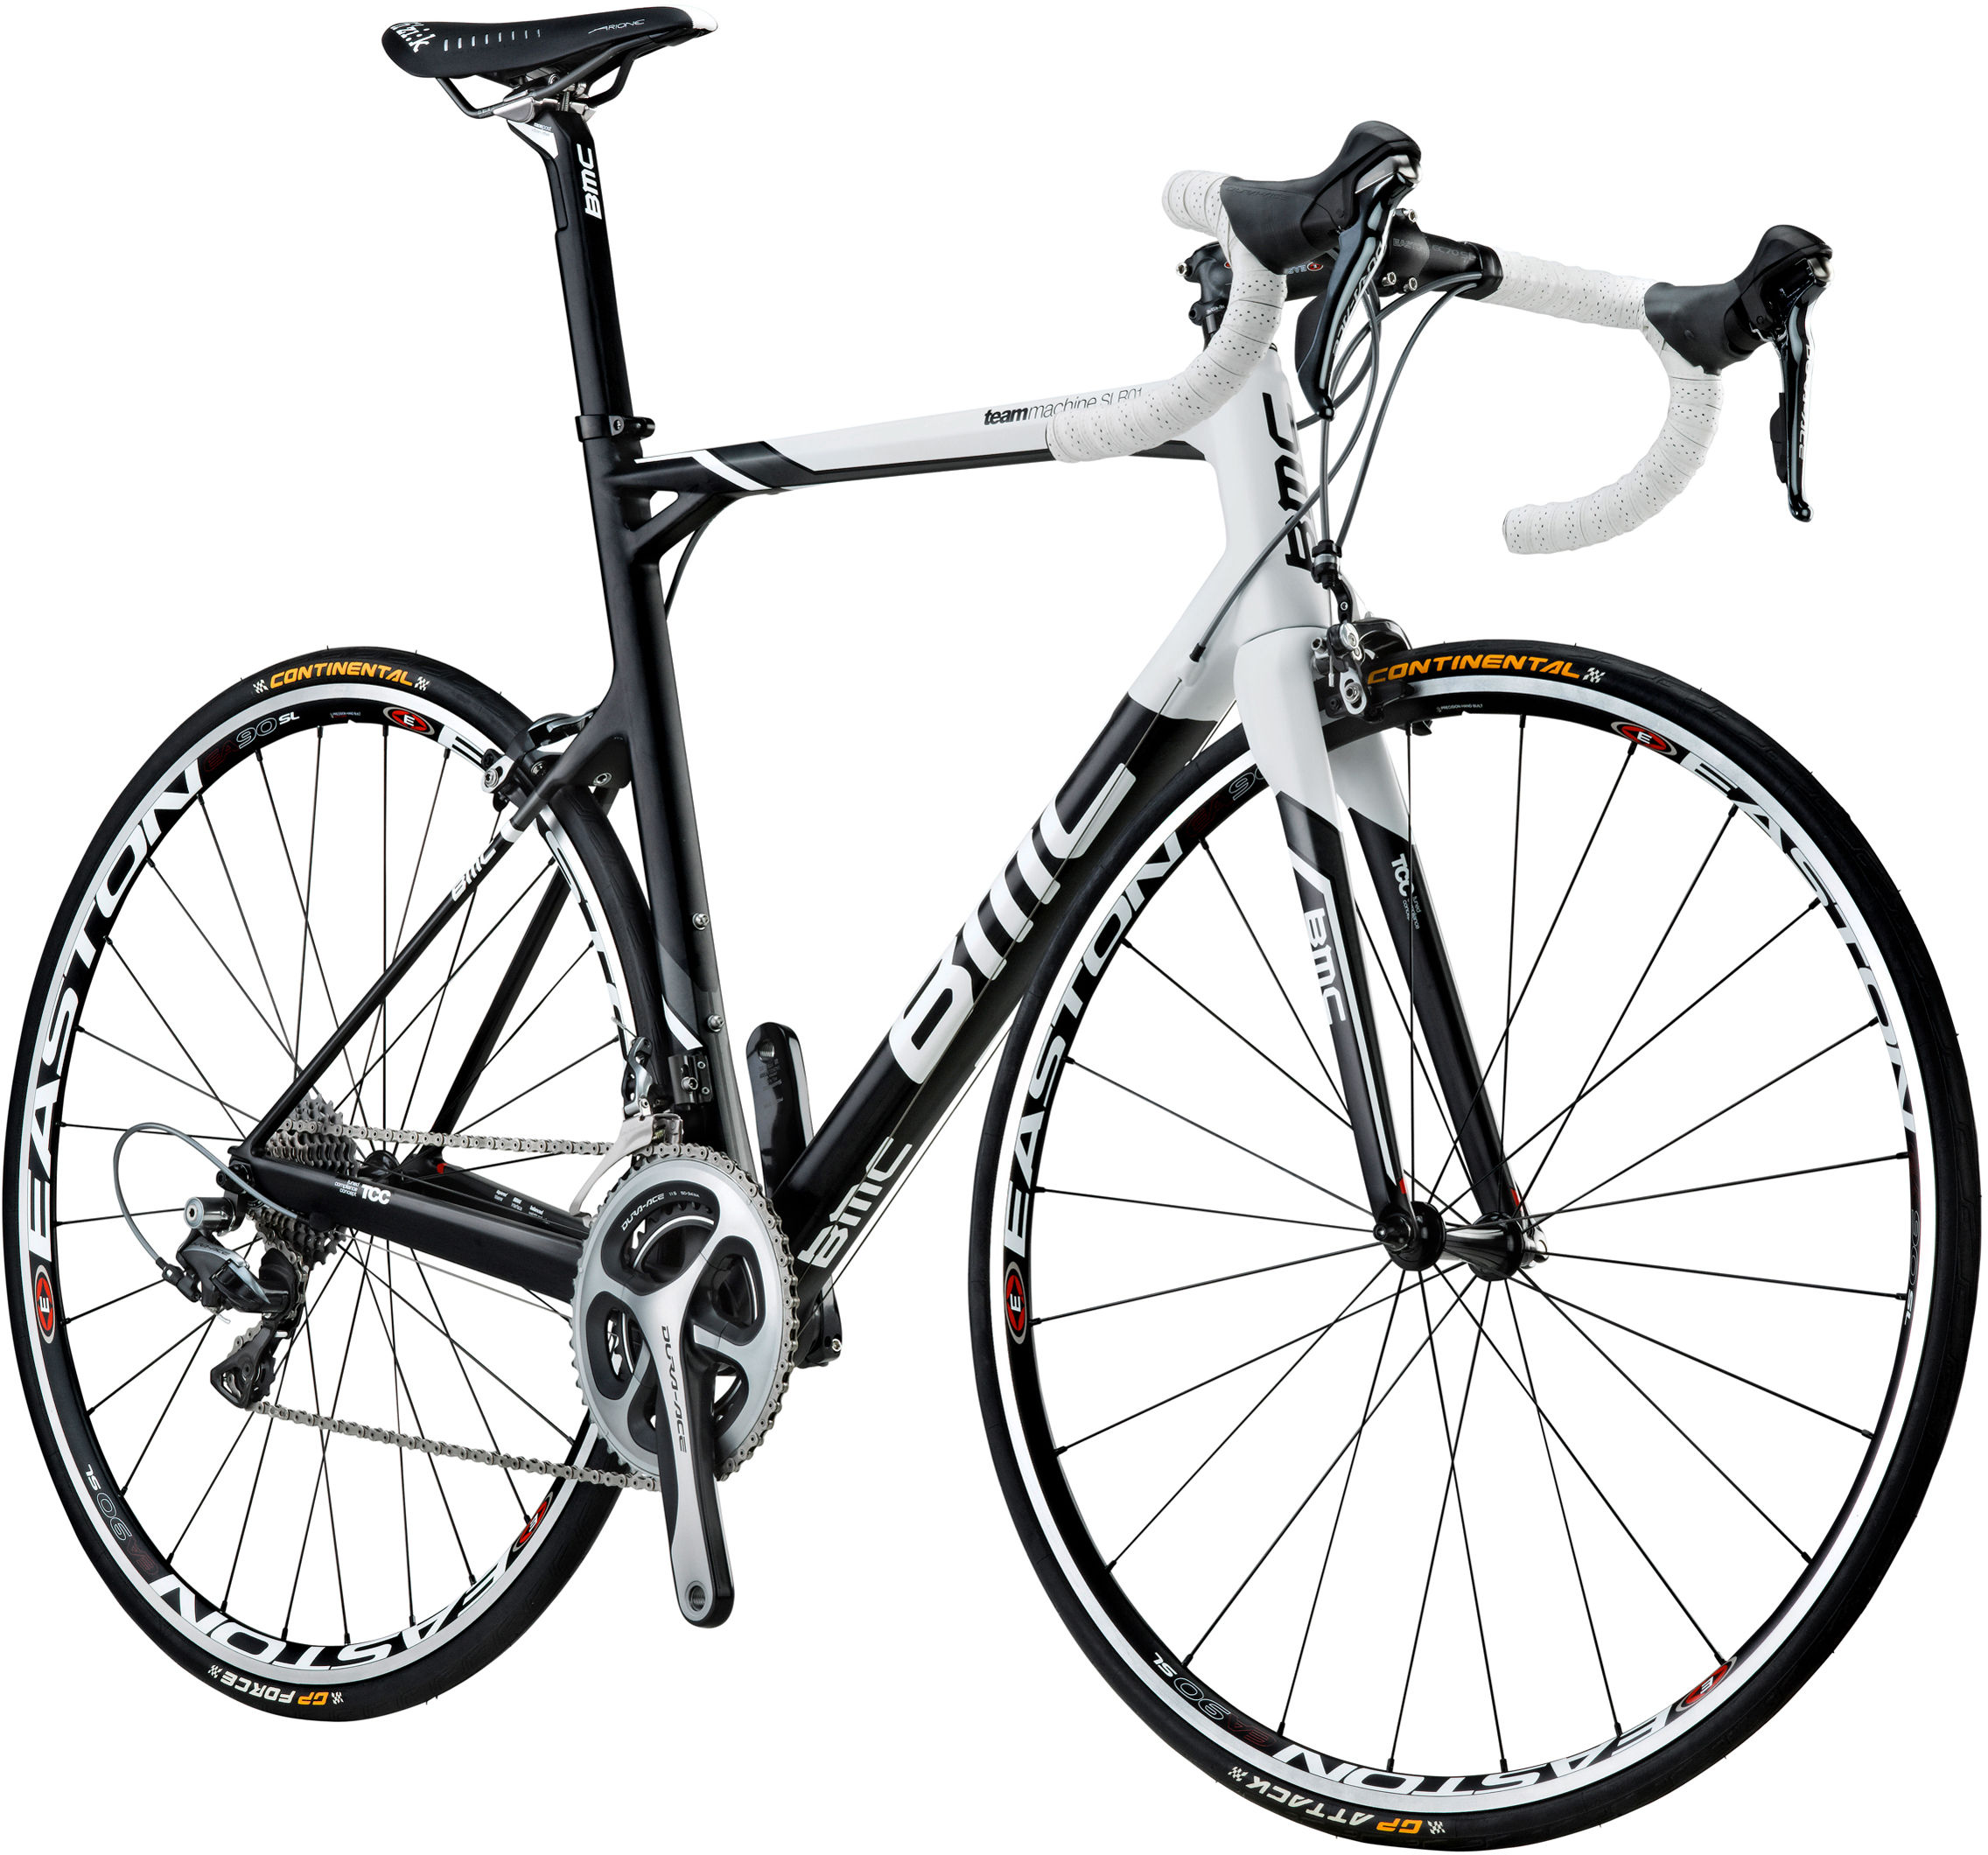 be51c80a63c BMC Teammachine SLR01 Dura Ace Compact 2013 review - The Bike List